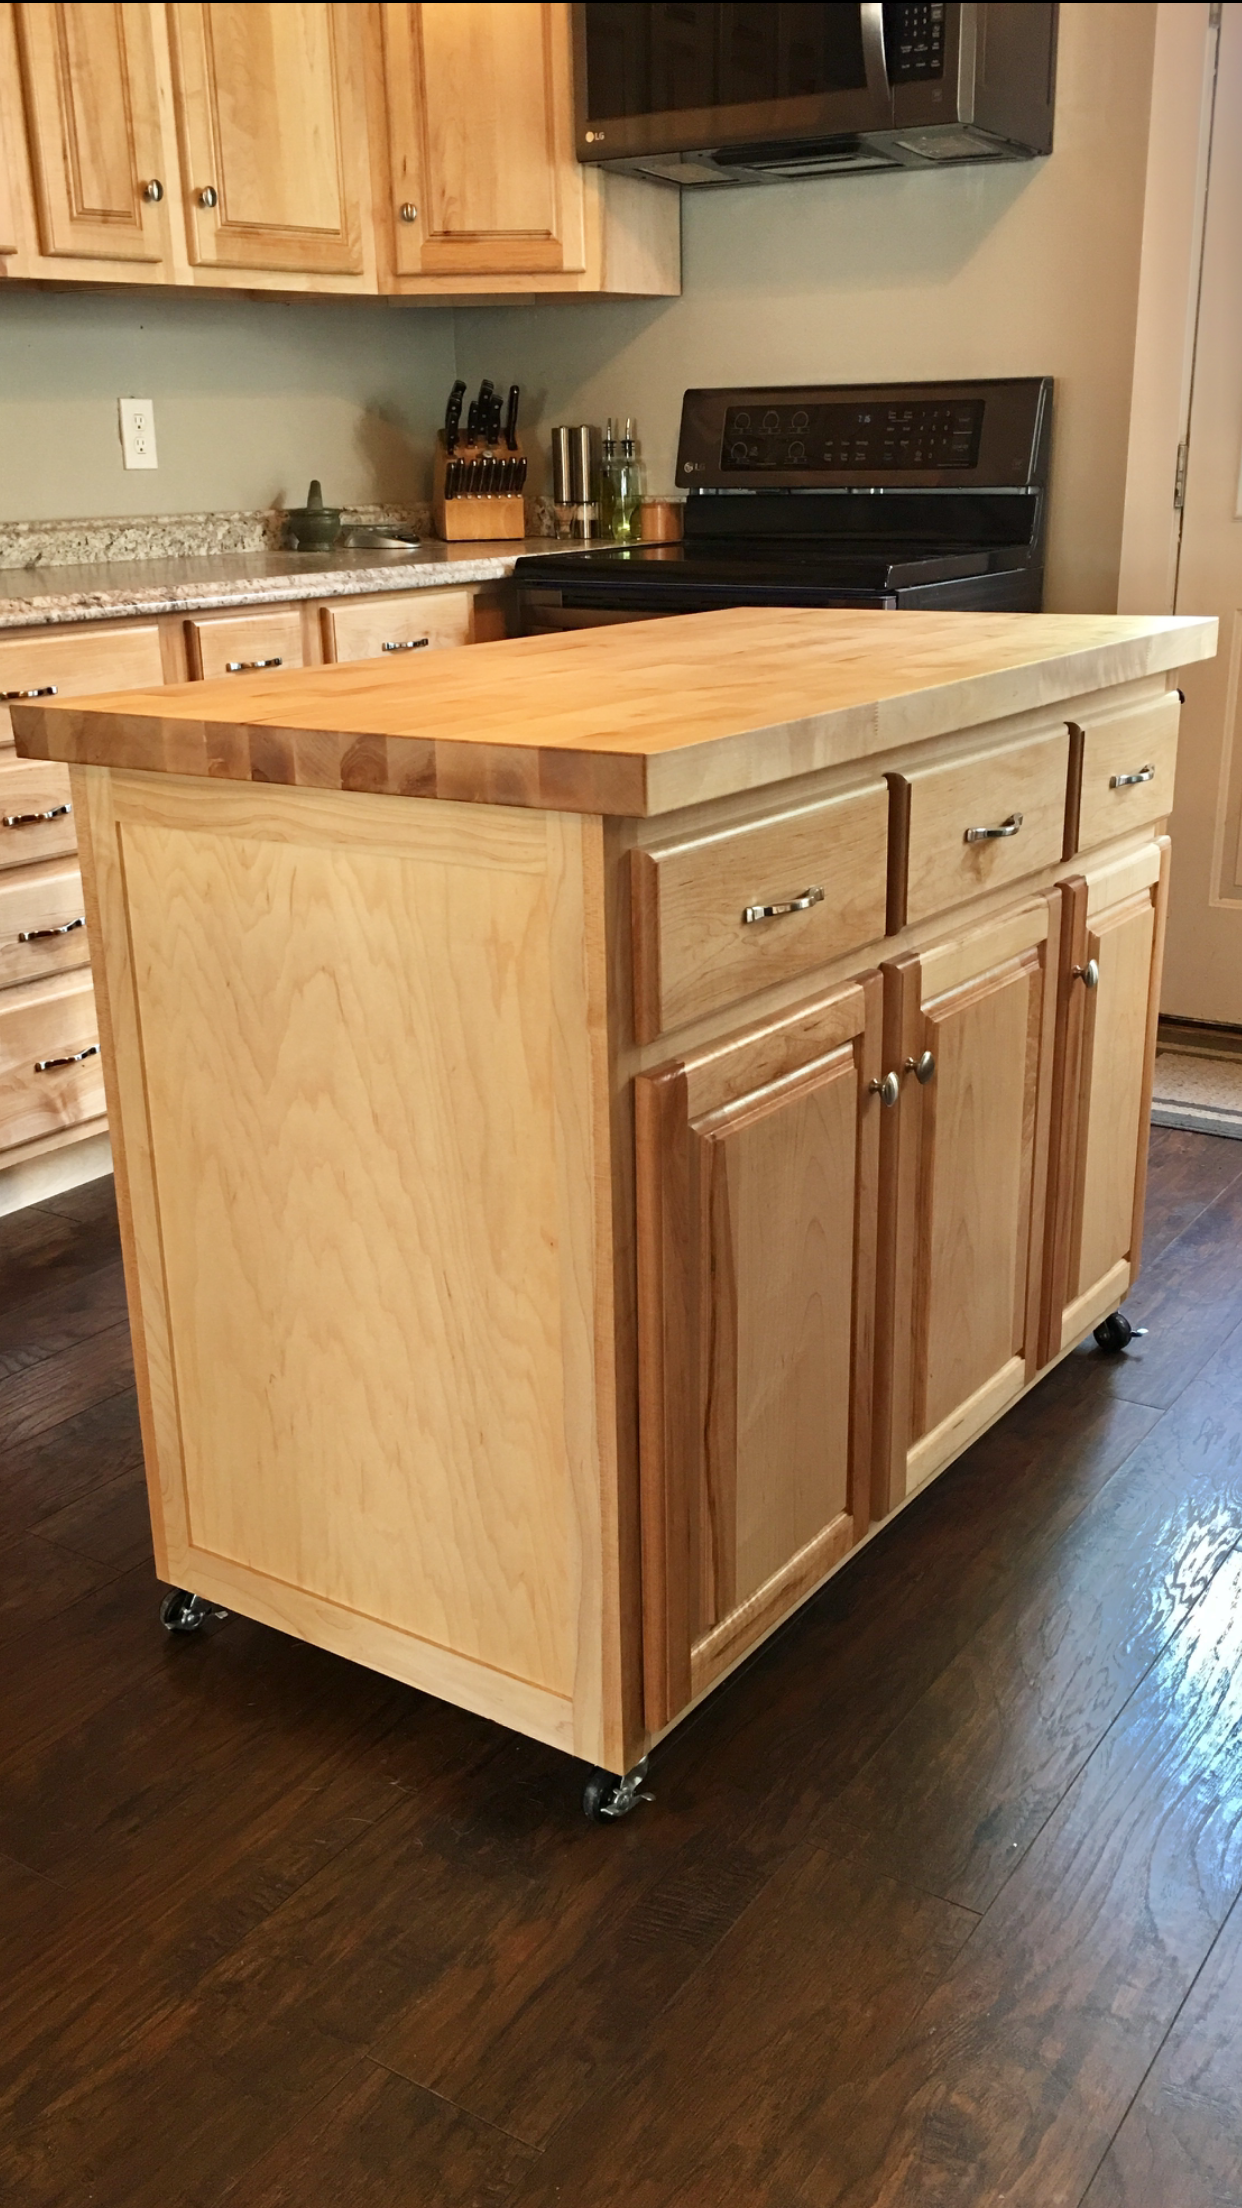 Kitchen Island On Wheels Made Of Solid Maple With A Butcher Block